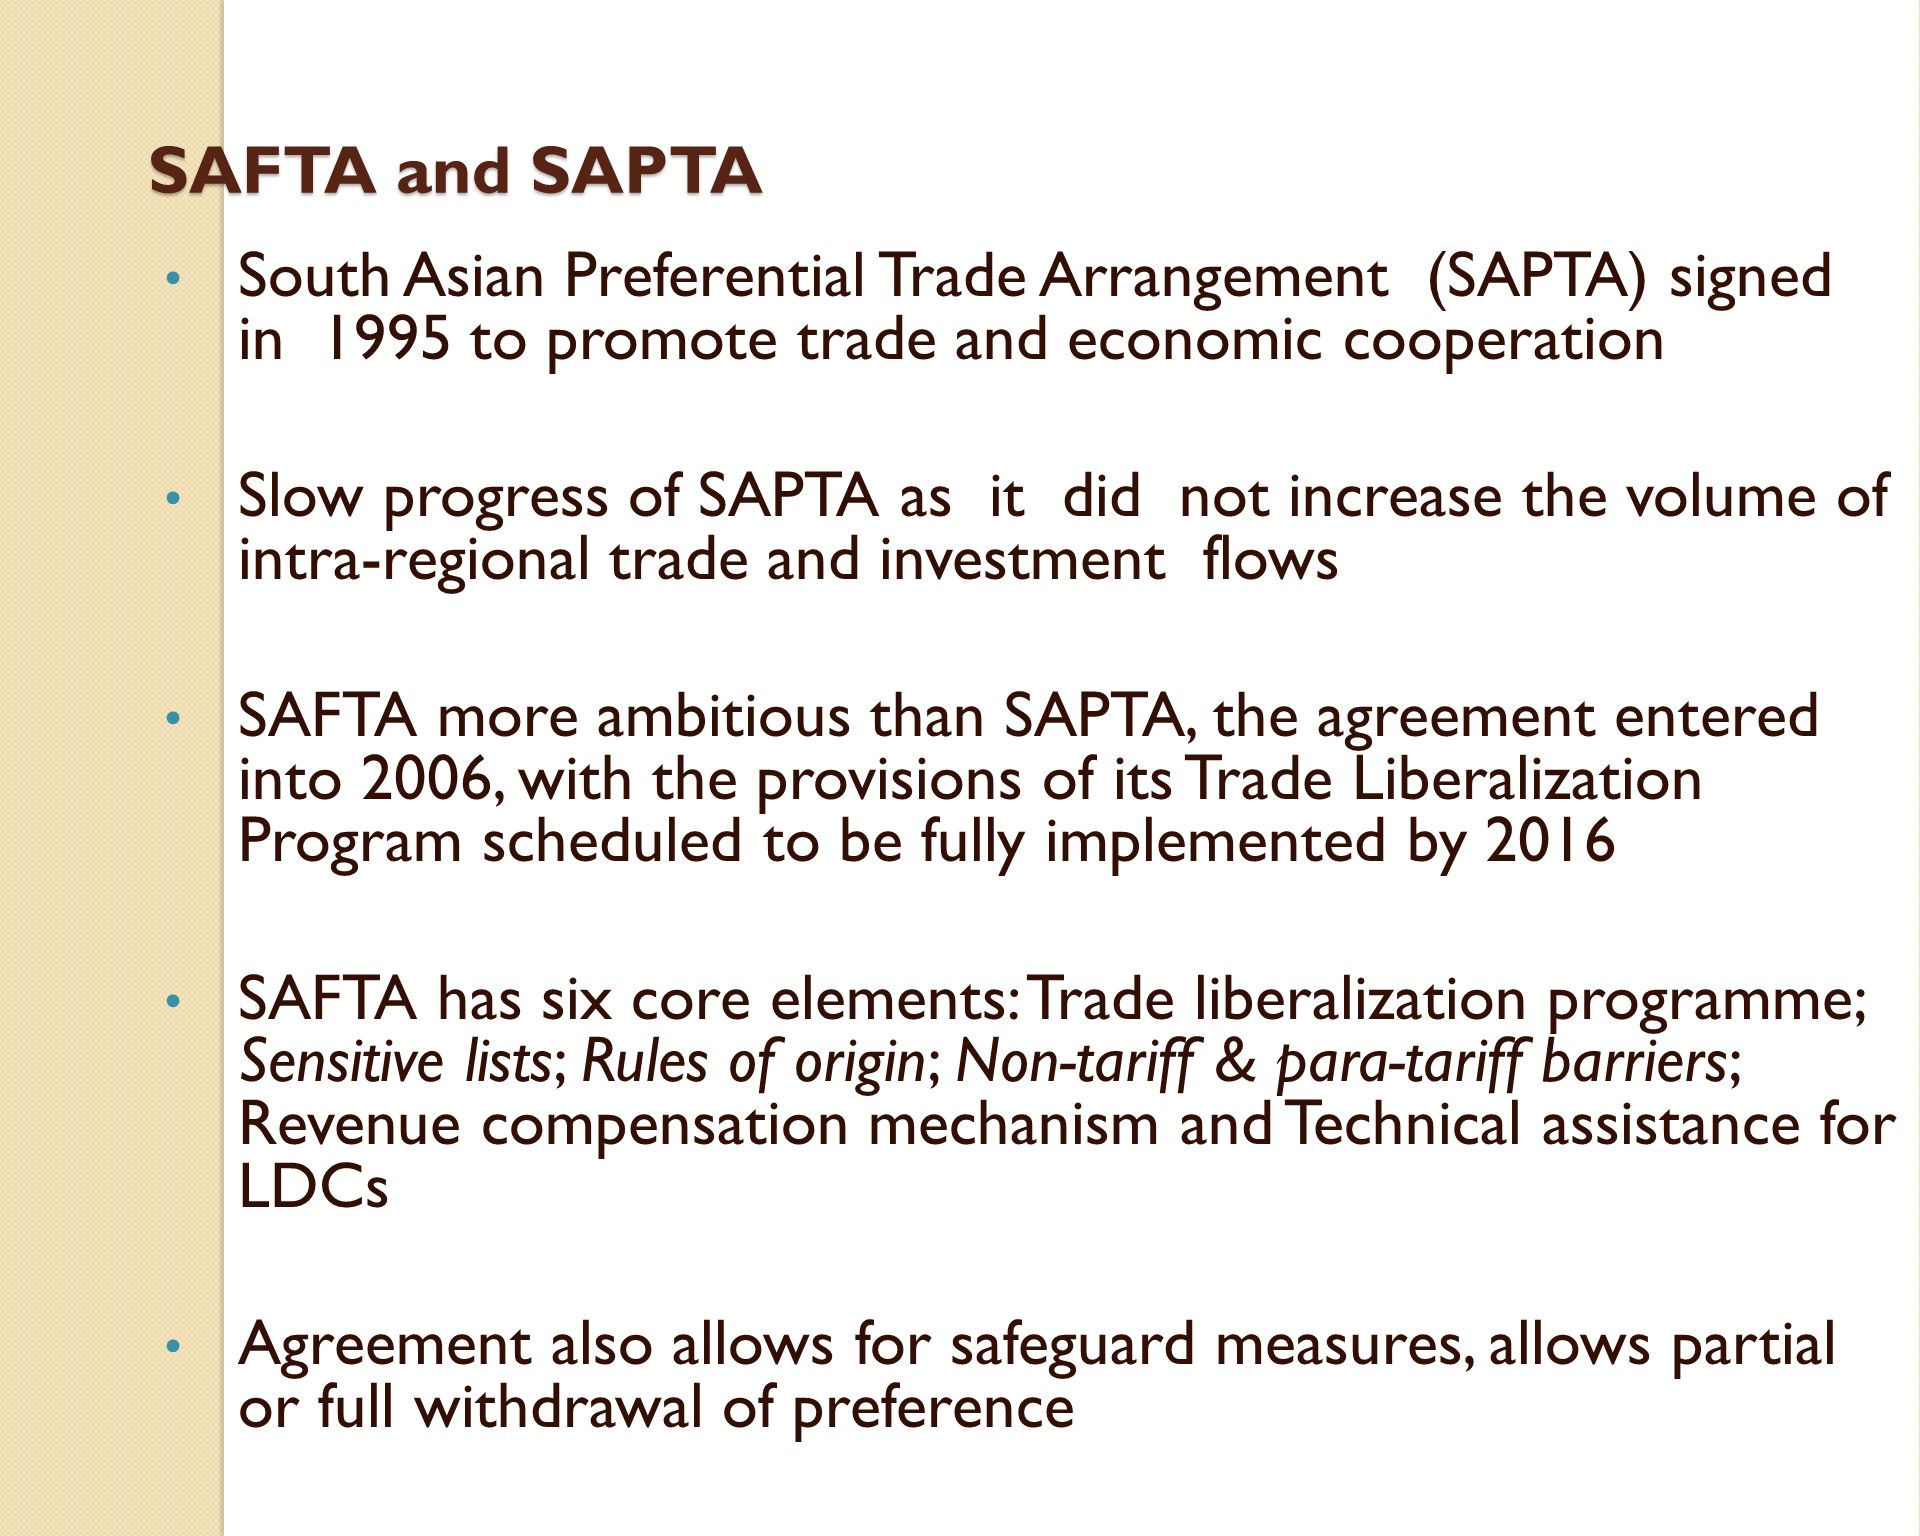 South asian free trade agreement safta issues and implications safta and sapta south asian preferential trade arrangement sapta signed in 1995 to promote platinumwayz